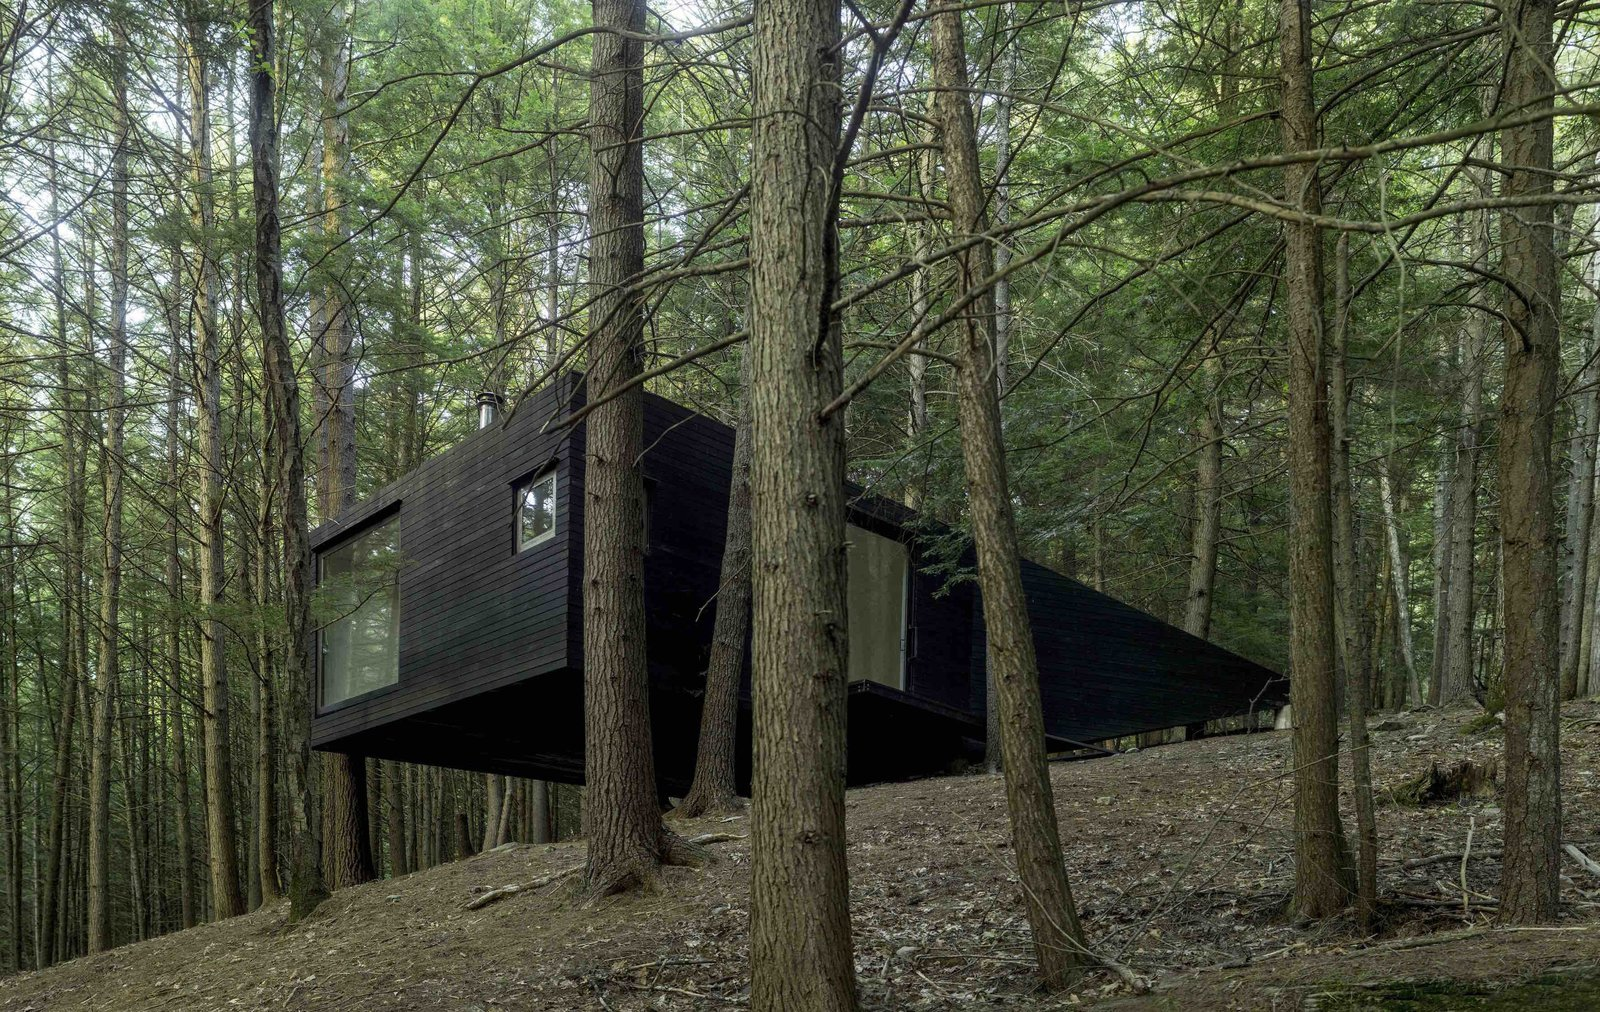 Exterior, Cabin Building Type, Wood Siding Material, and Flat RoofLine In a remote second-growth forest in Sullivan County, New York, is an off-the-grid tree house that was constructed with the help of the trees around it.    Sited on a steep, sloping hill surrounded by trees, the 360-square-foot project was designed to accommodate a limited $20,000 construction budget—and to be approachable enough that amateur weekend builders could construct it.   Architects Mike Jacobs, Biayna Bogosian, Forrest Jessee, Leopold Lambert, and Luis Gutierrez of award-winning New York practice Jacobschang Architecture designed a tree house structure that overcame the challenge of the site's steep topography.  Photo 8 of 11 in Dwell's Top 10 Cabins of 2017 from A Dramatic Tree House by Budget-Conscious DIY Builders